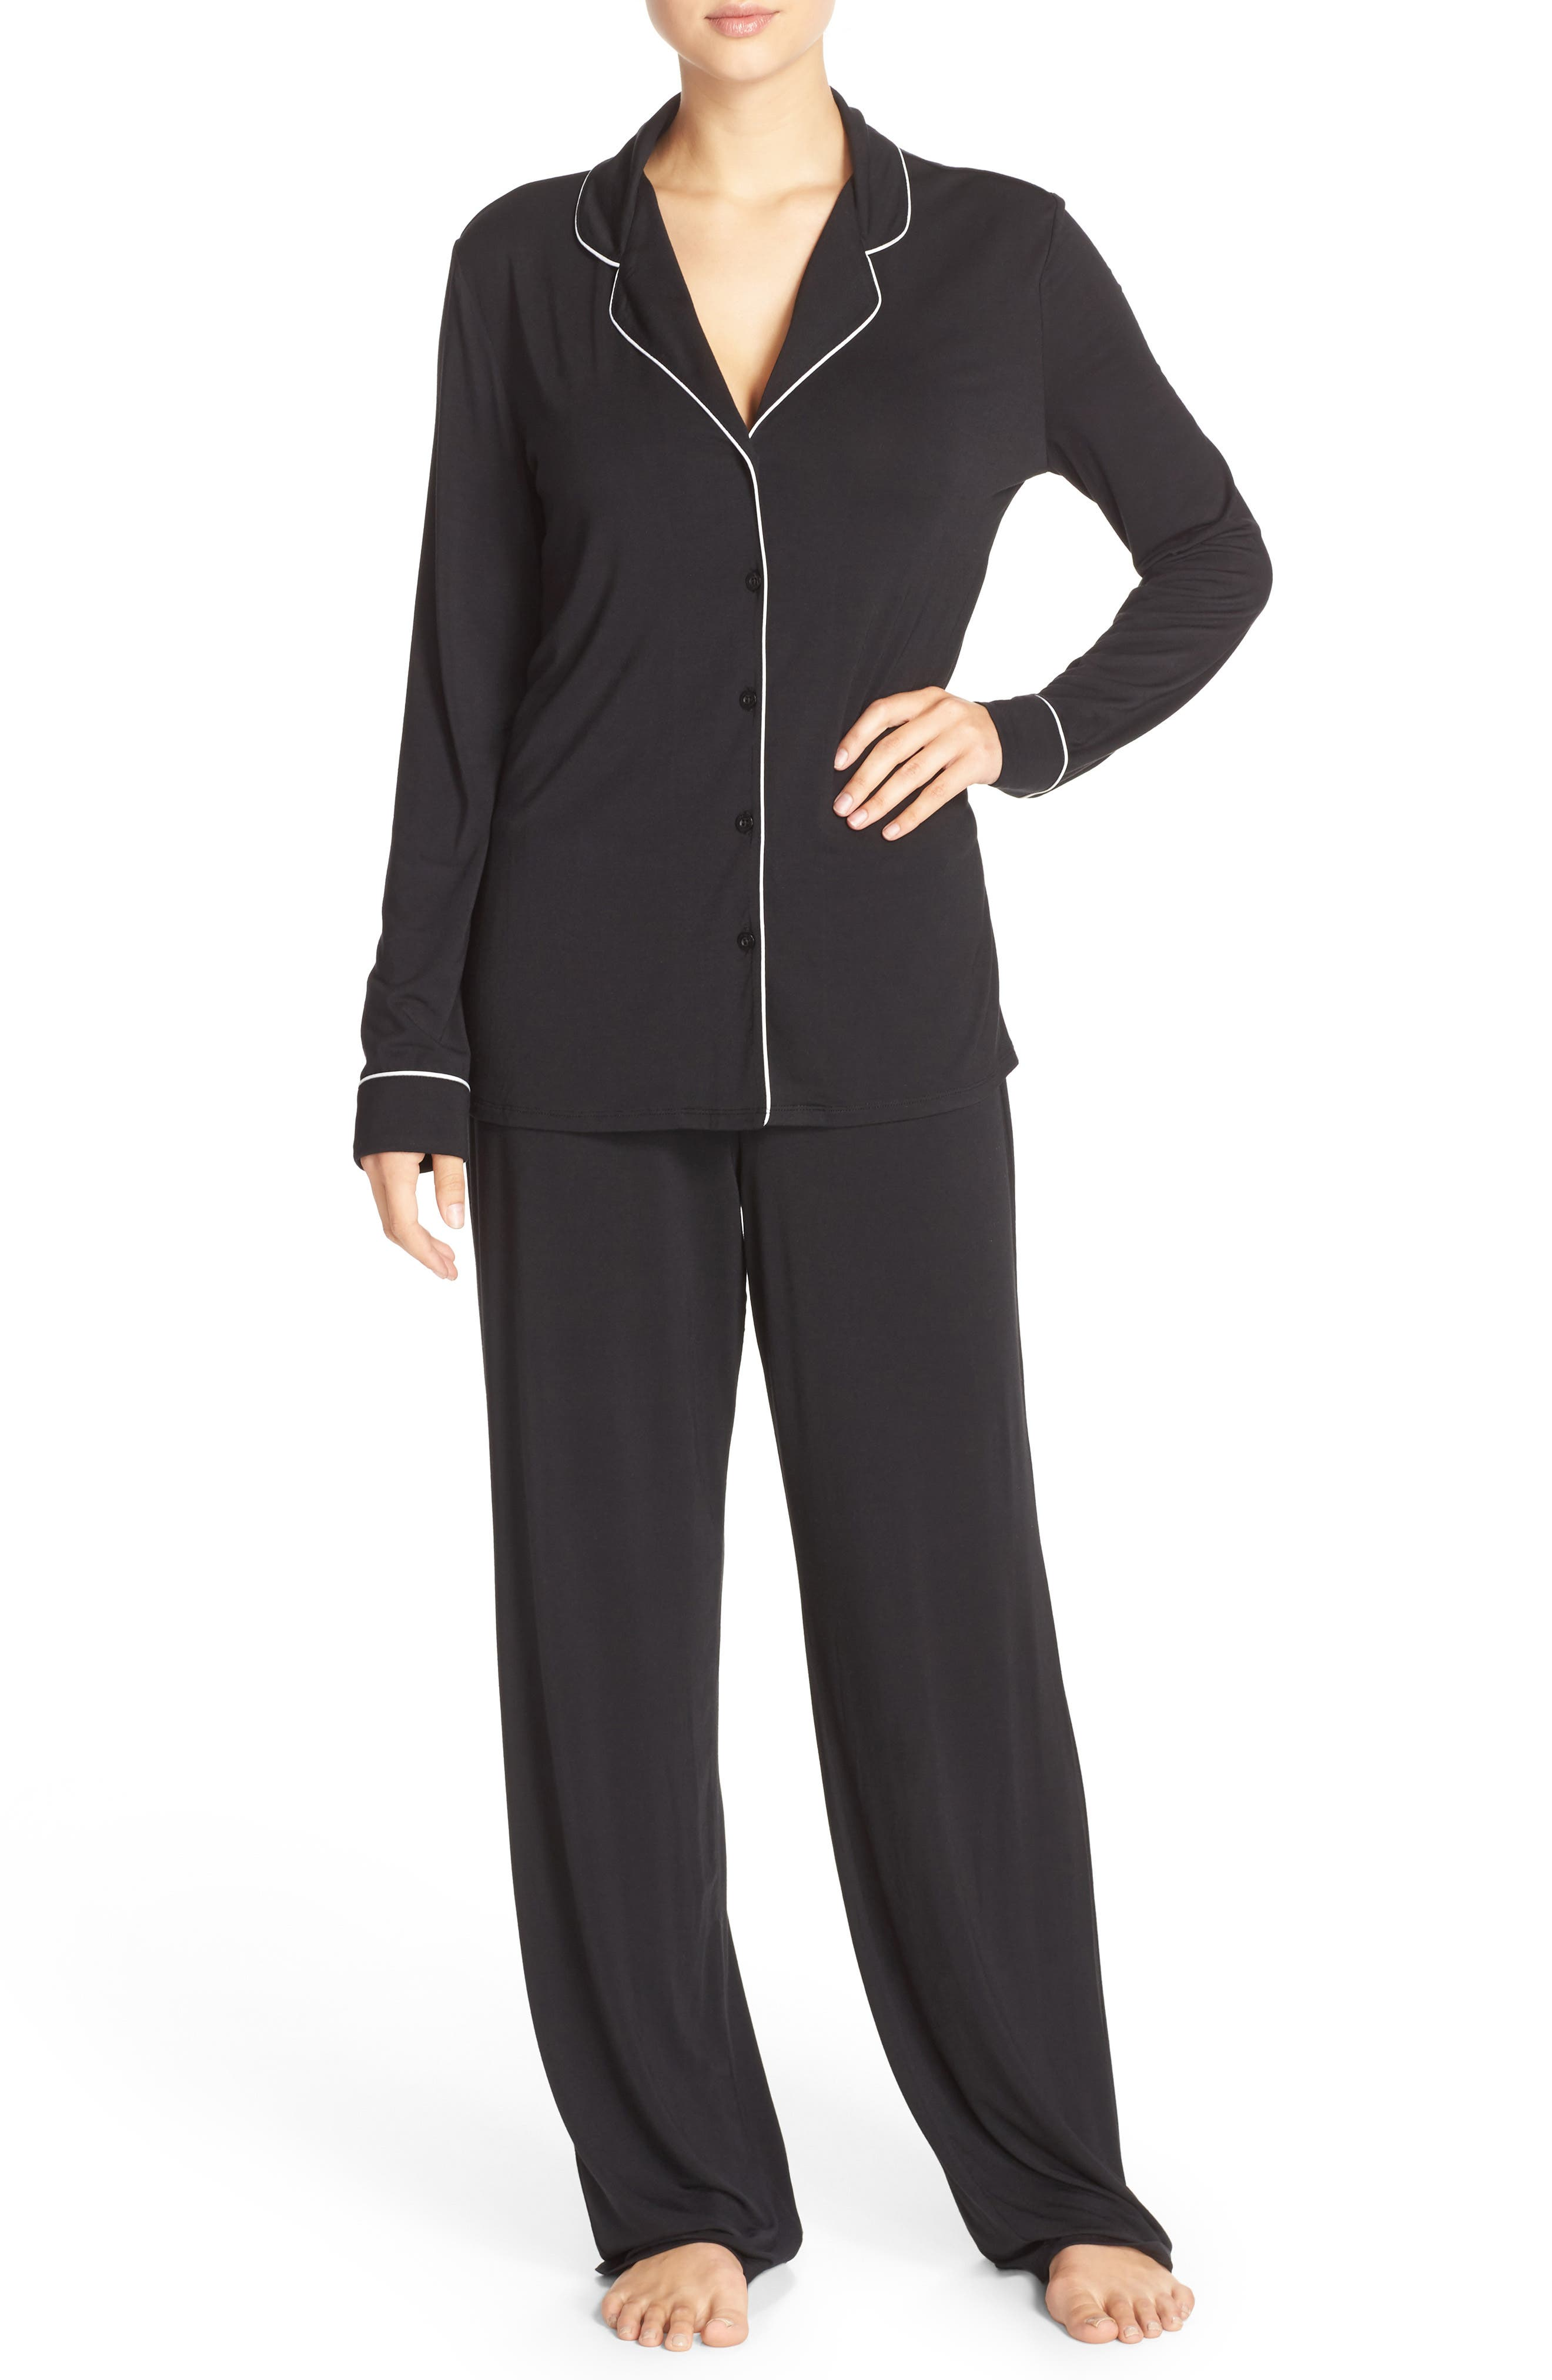 NORDSTROM LINGERIE, Moonlight Pajamas, Main thumbnail 1, color, BLACK